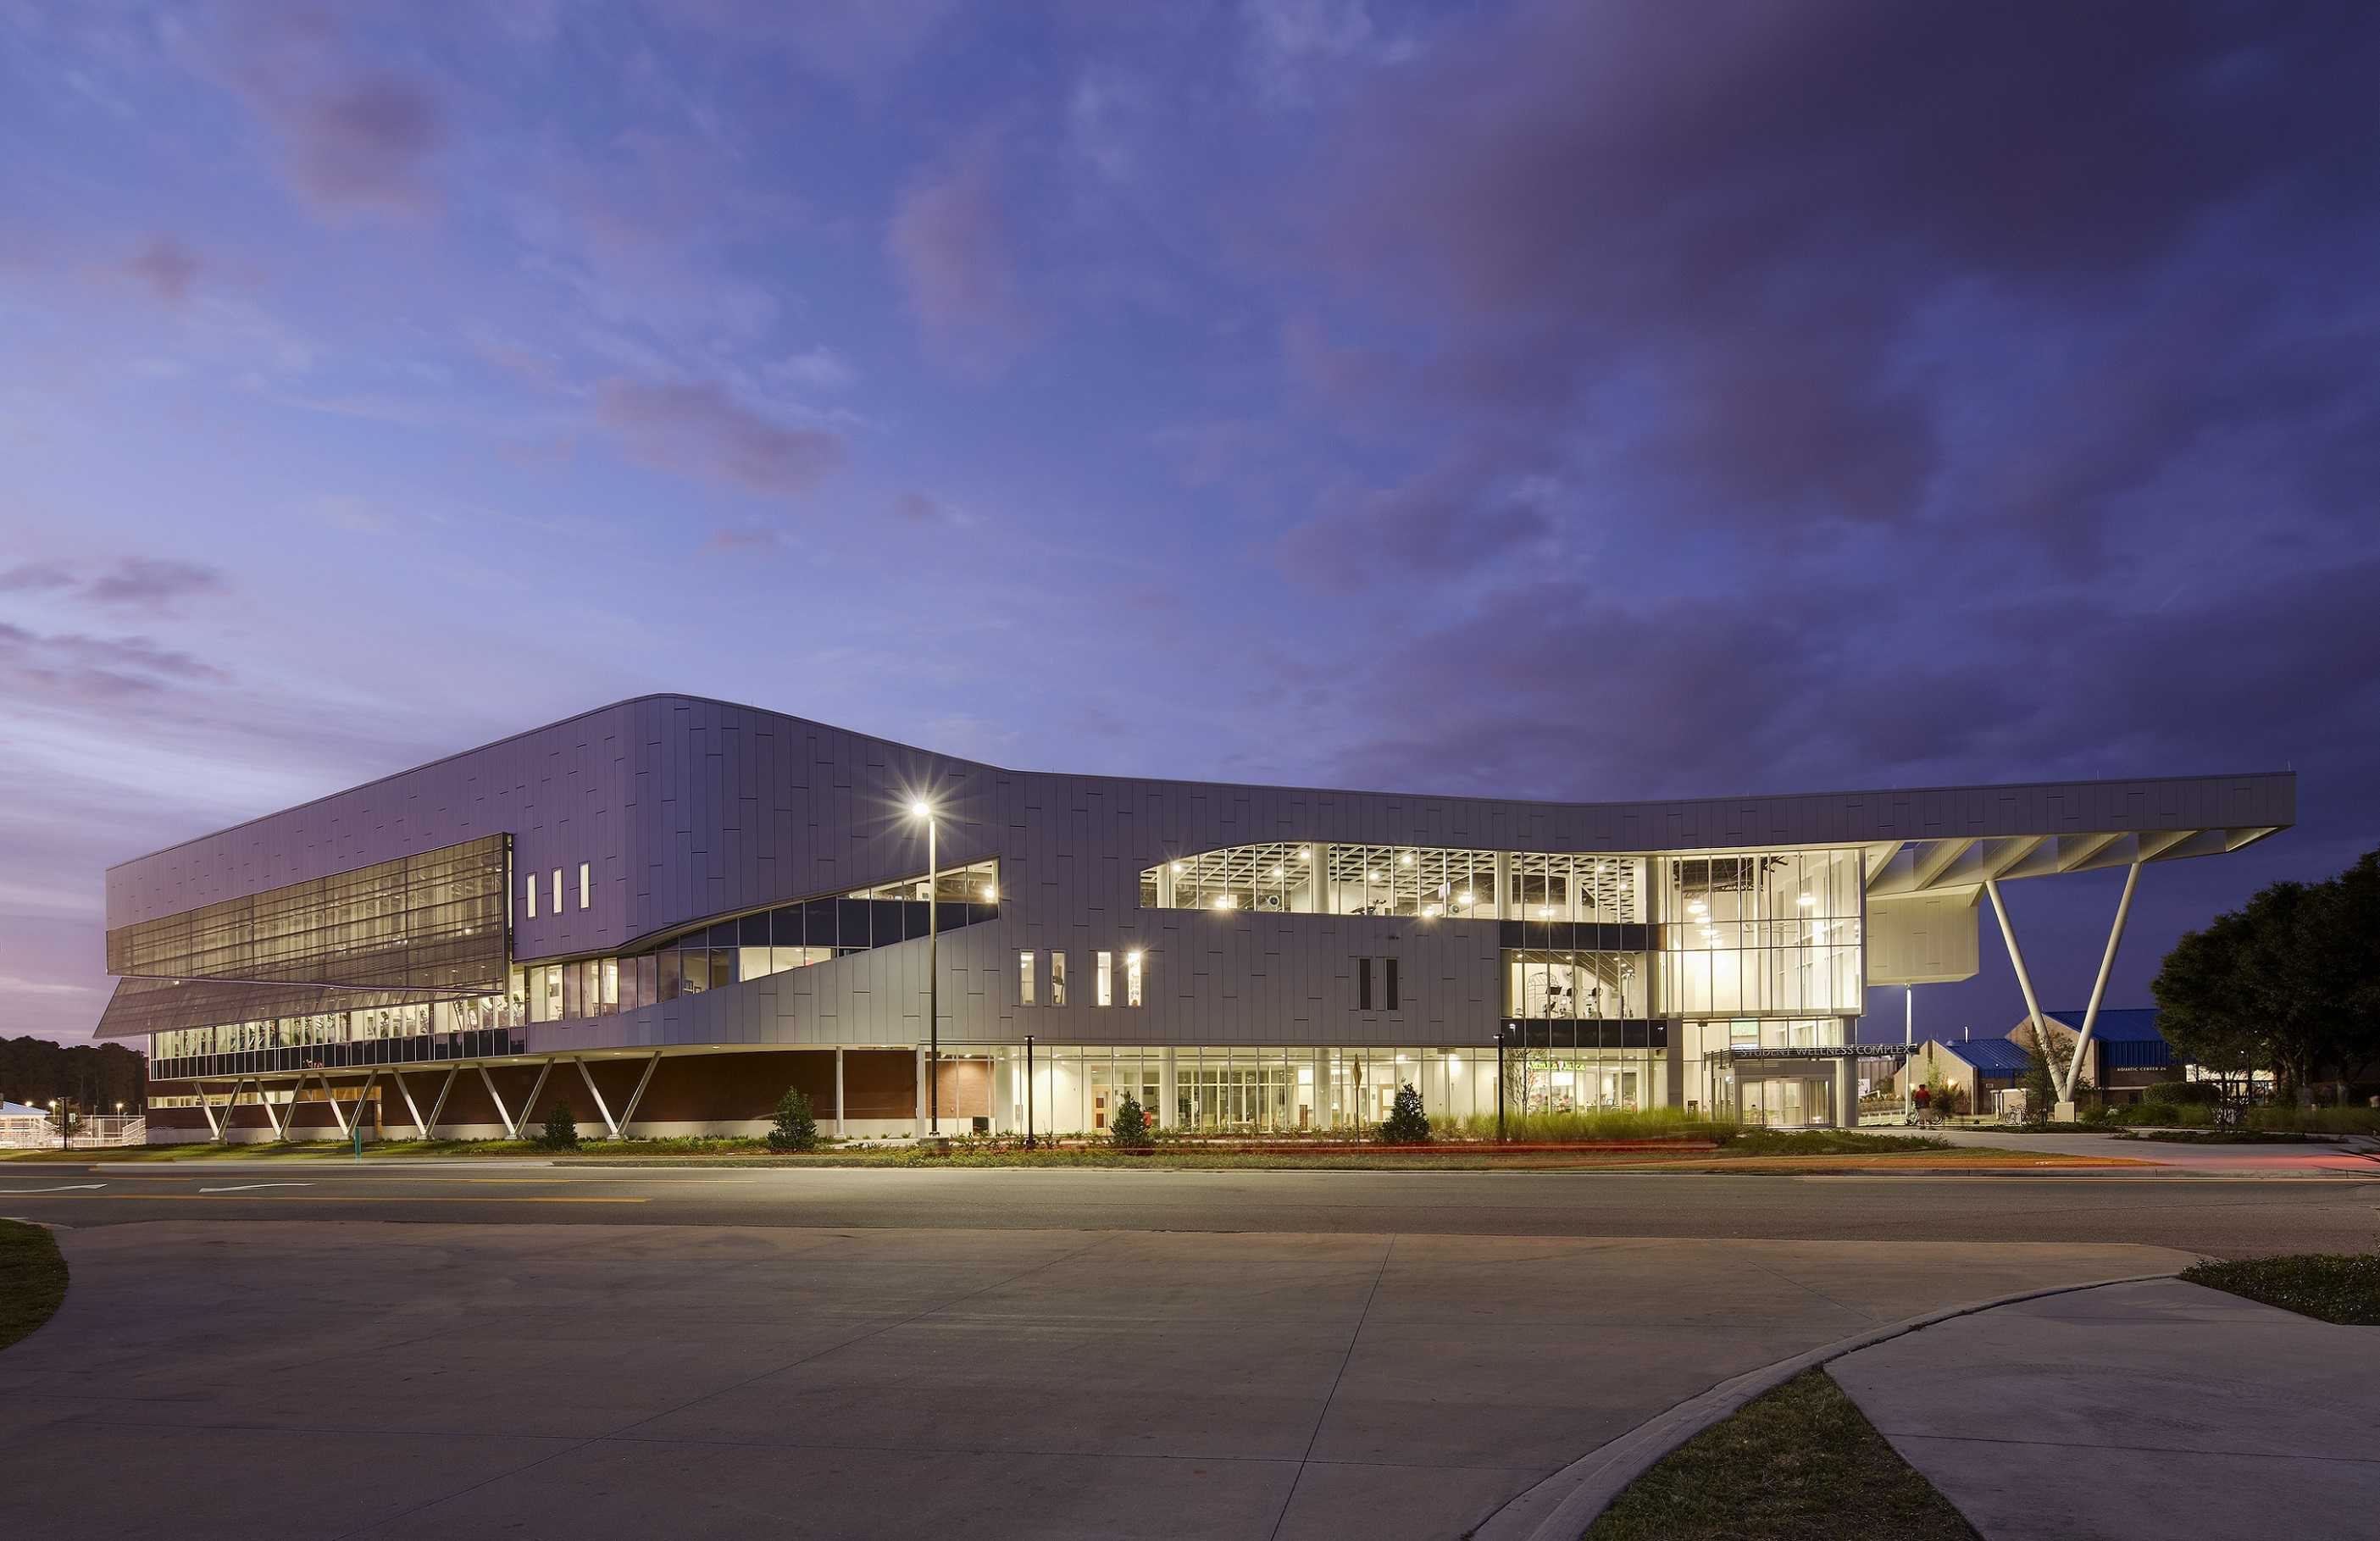 Student Wellness Complex ranks seventh in Florida buildings